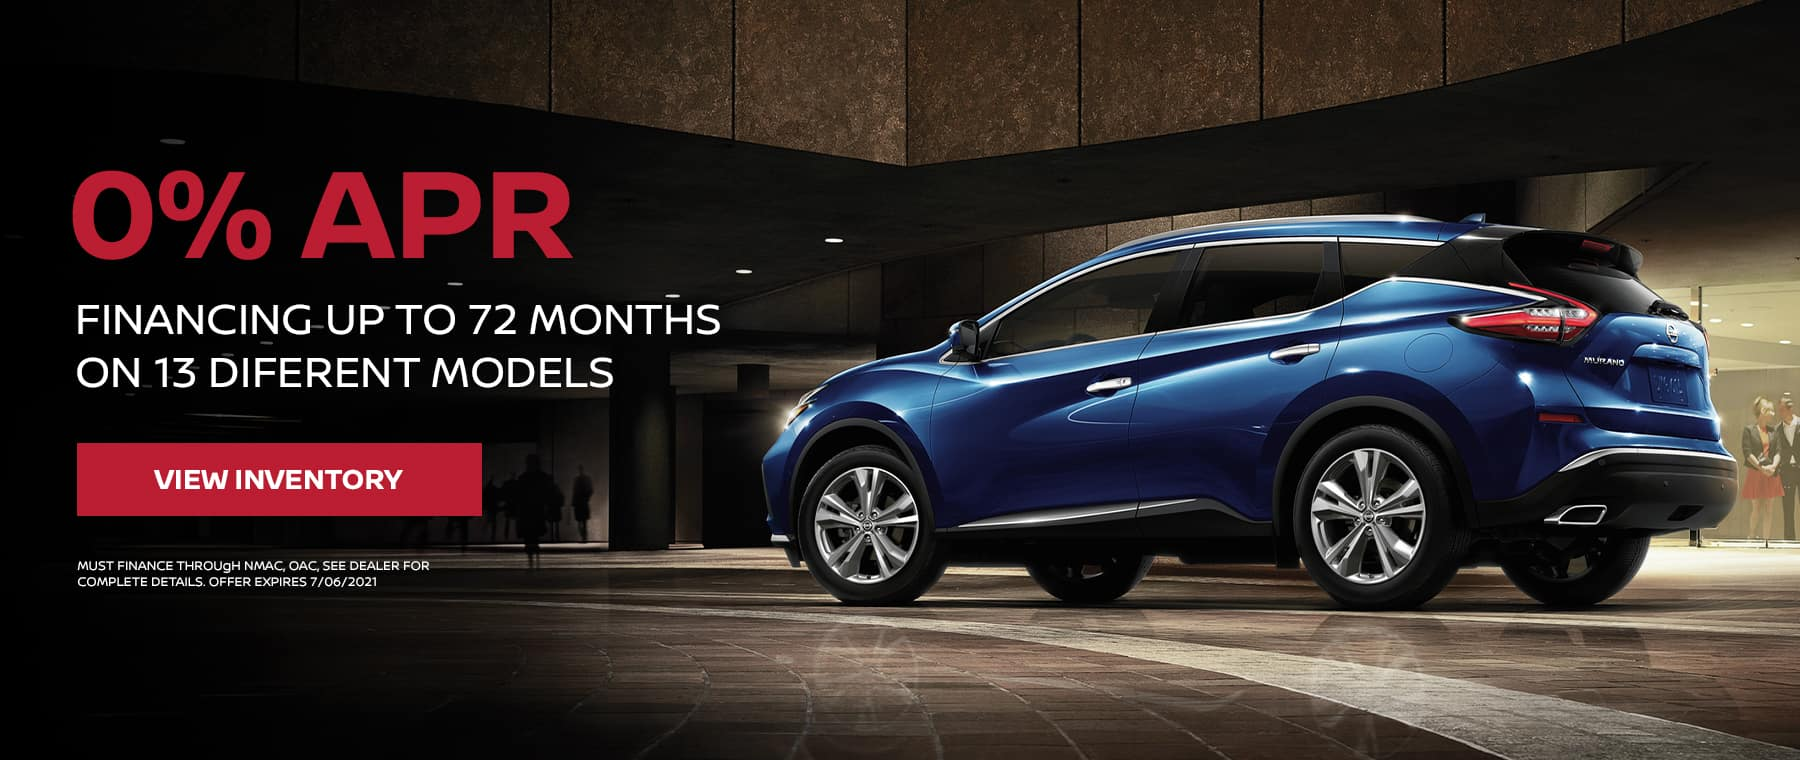 0% FINANCING UP TO 72 MONTHS